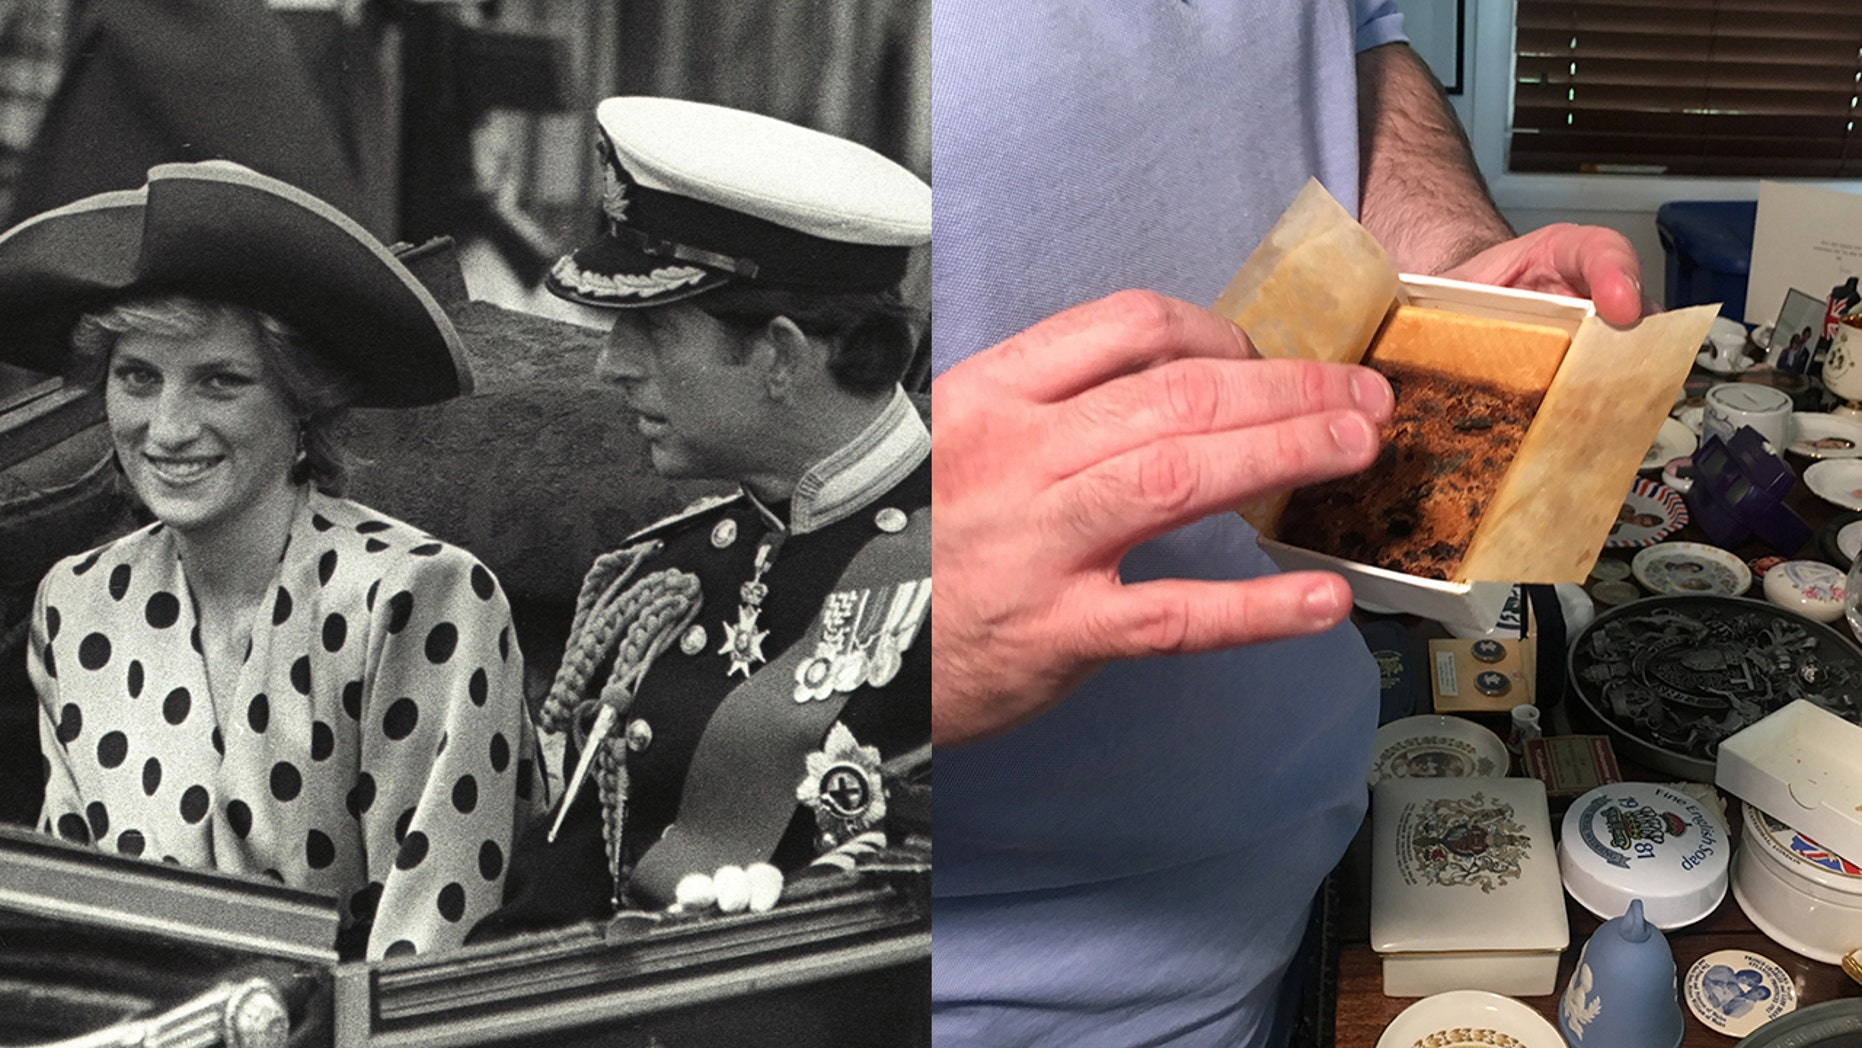 The fruitcake served at the royal weddings, such as that of Princess Diana and Prince Charles, has become something of a collector's item, too.